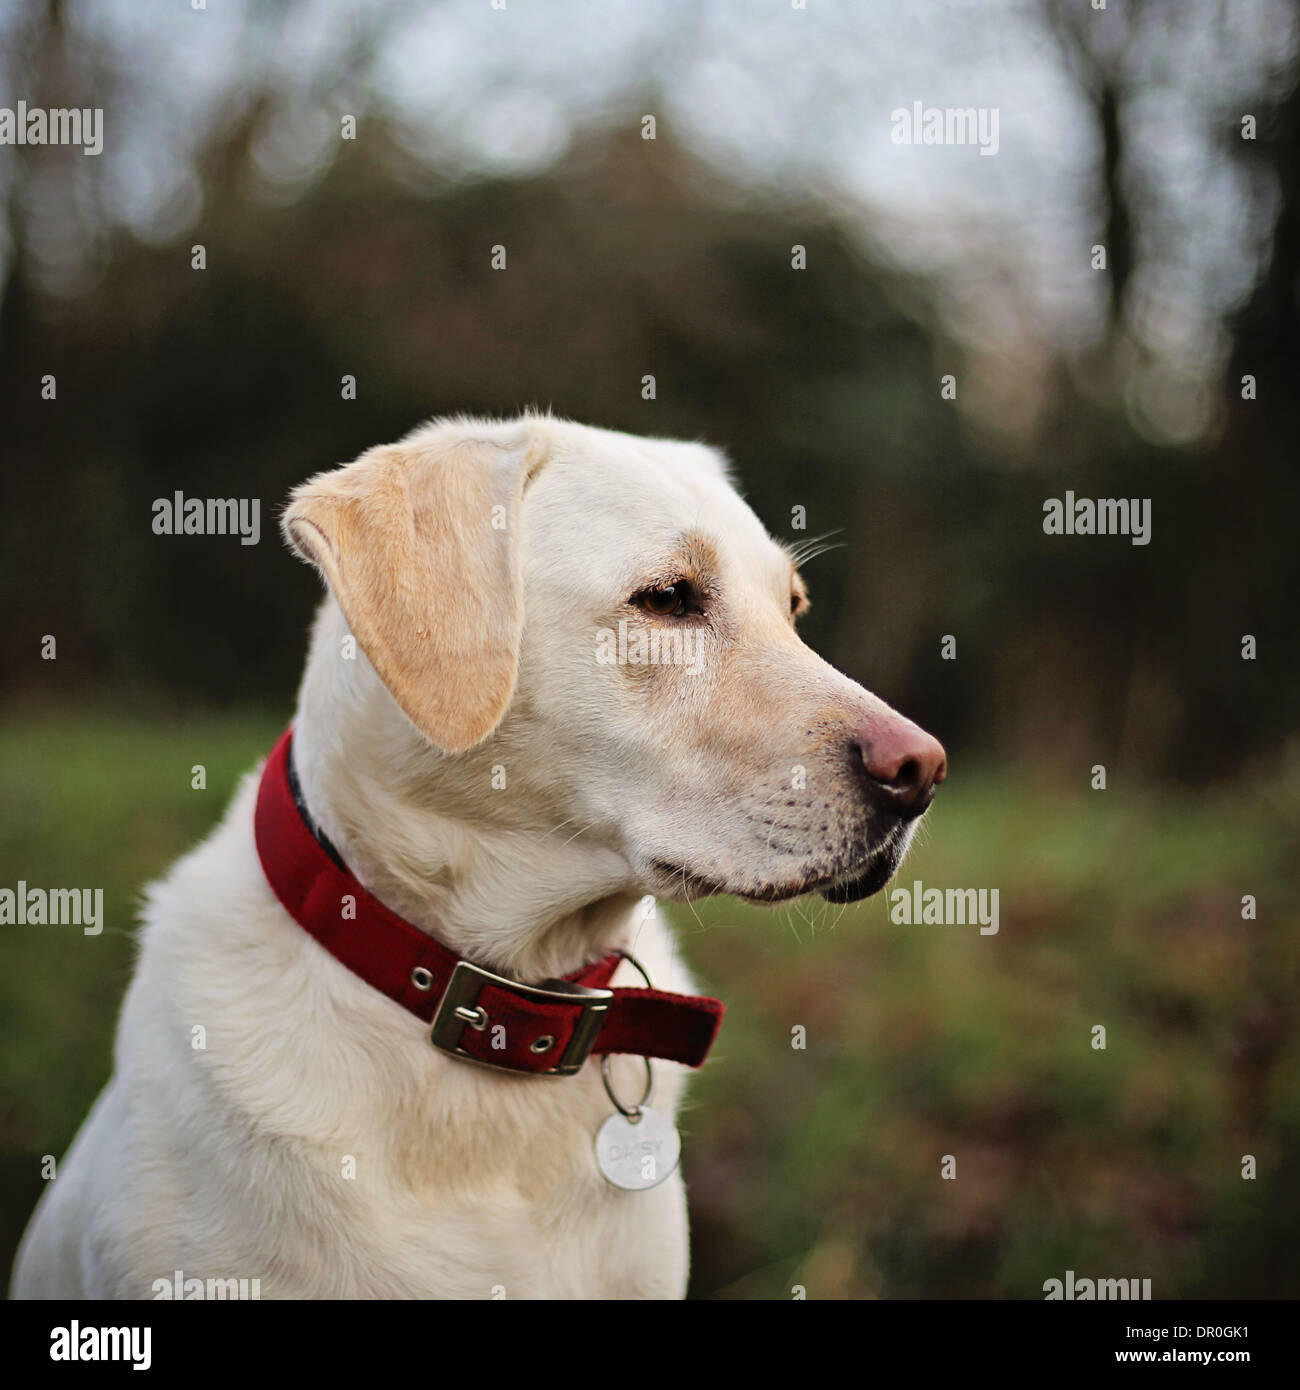 Labrador dog portrait - Stock Image